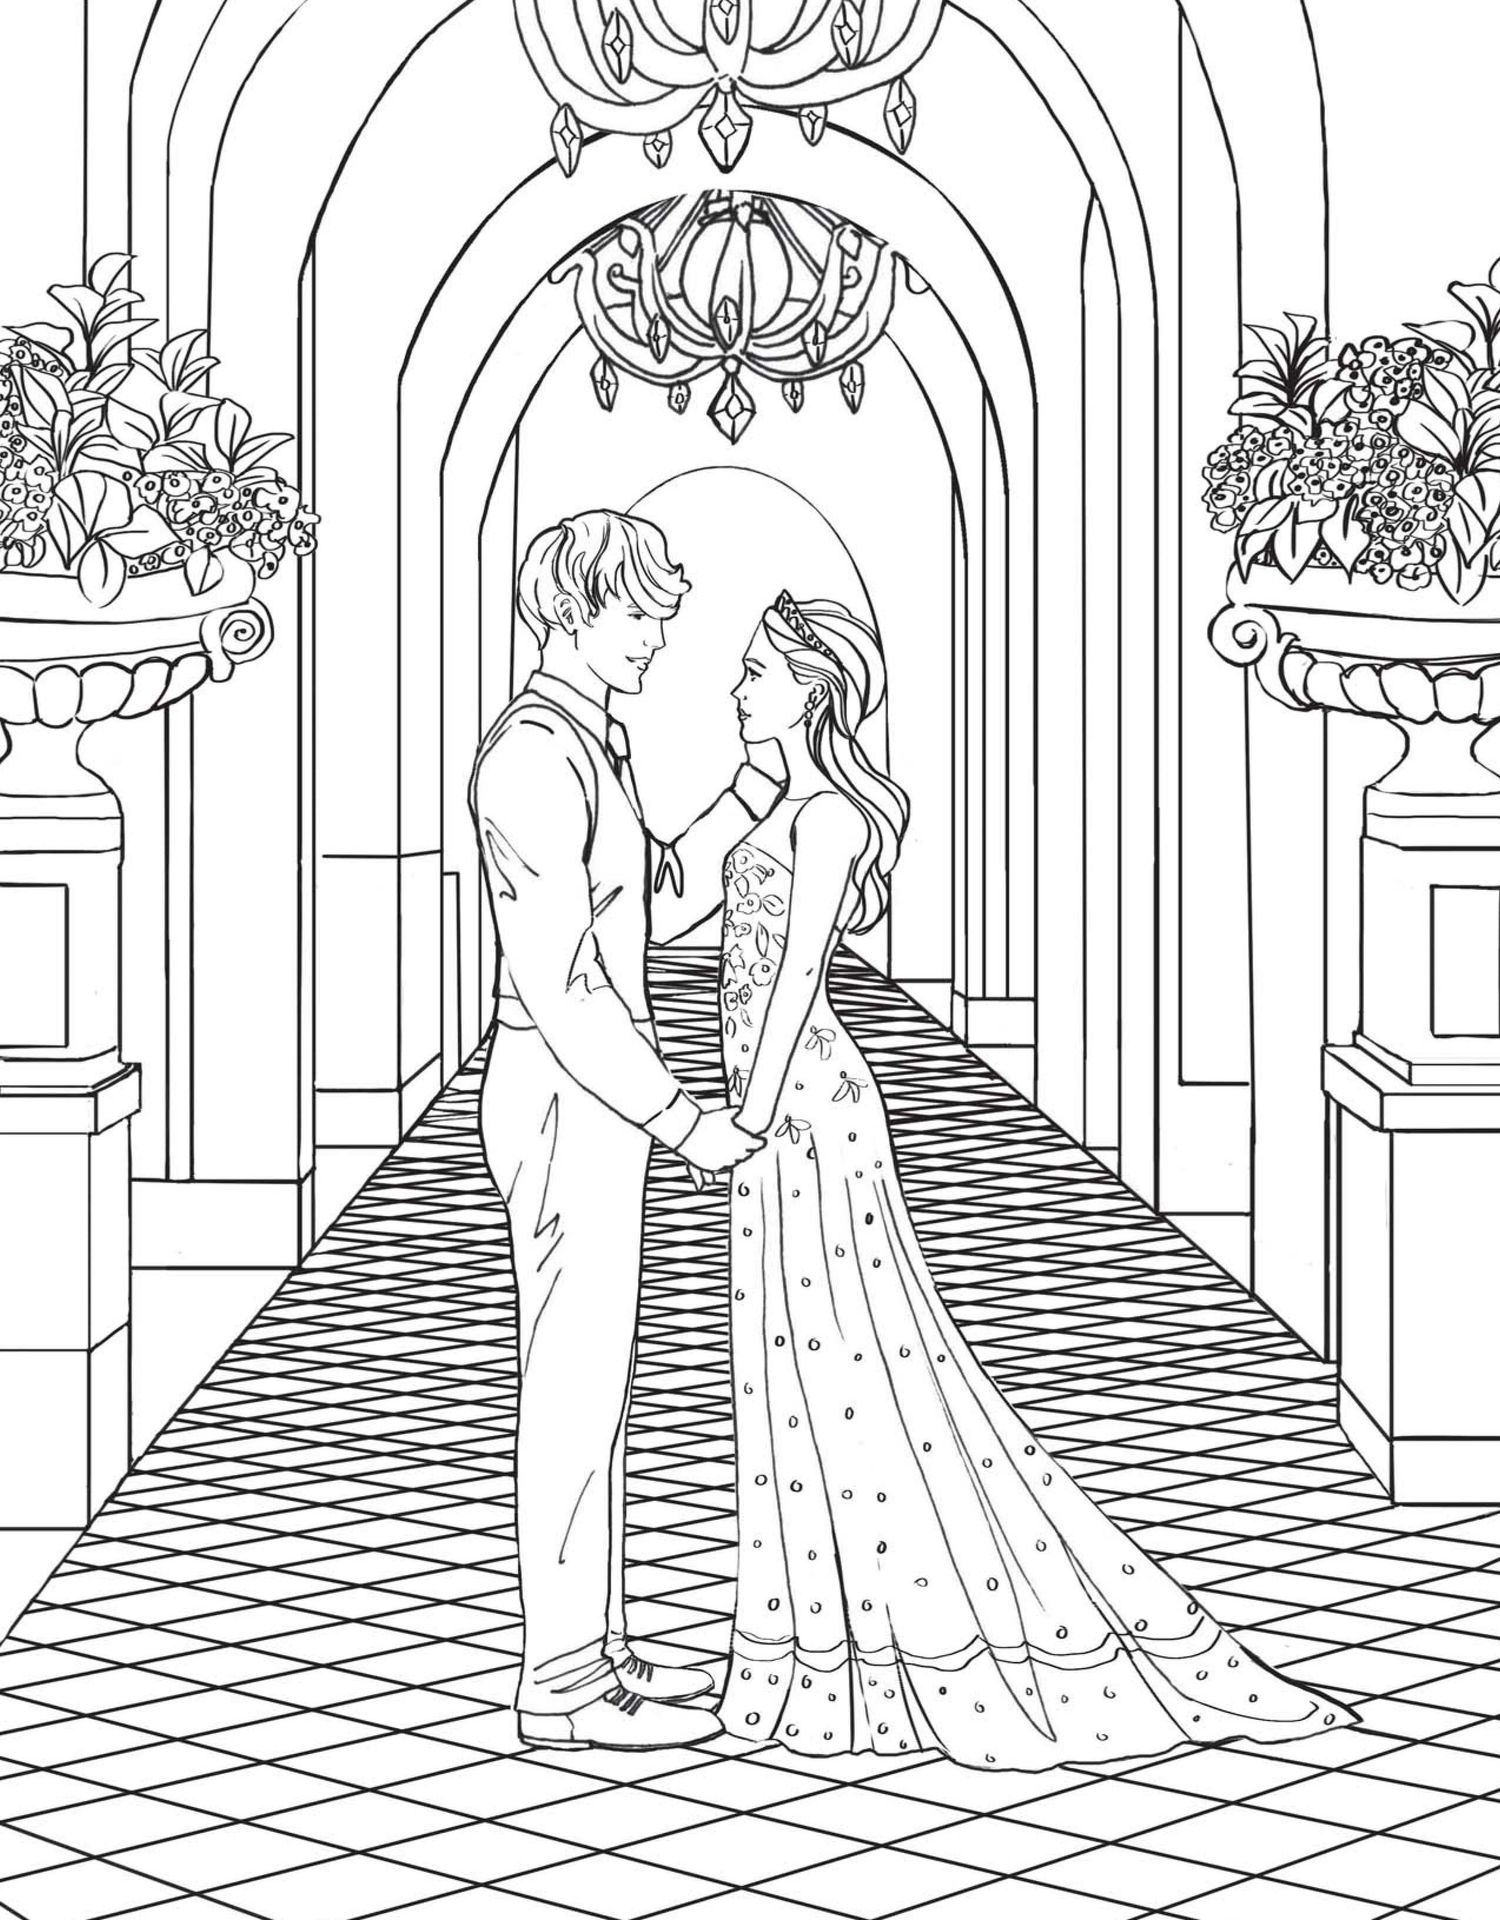 Maxon and America's Happily Ever After And More [On Hold